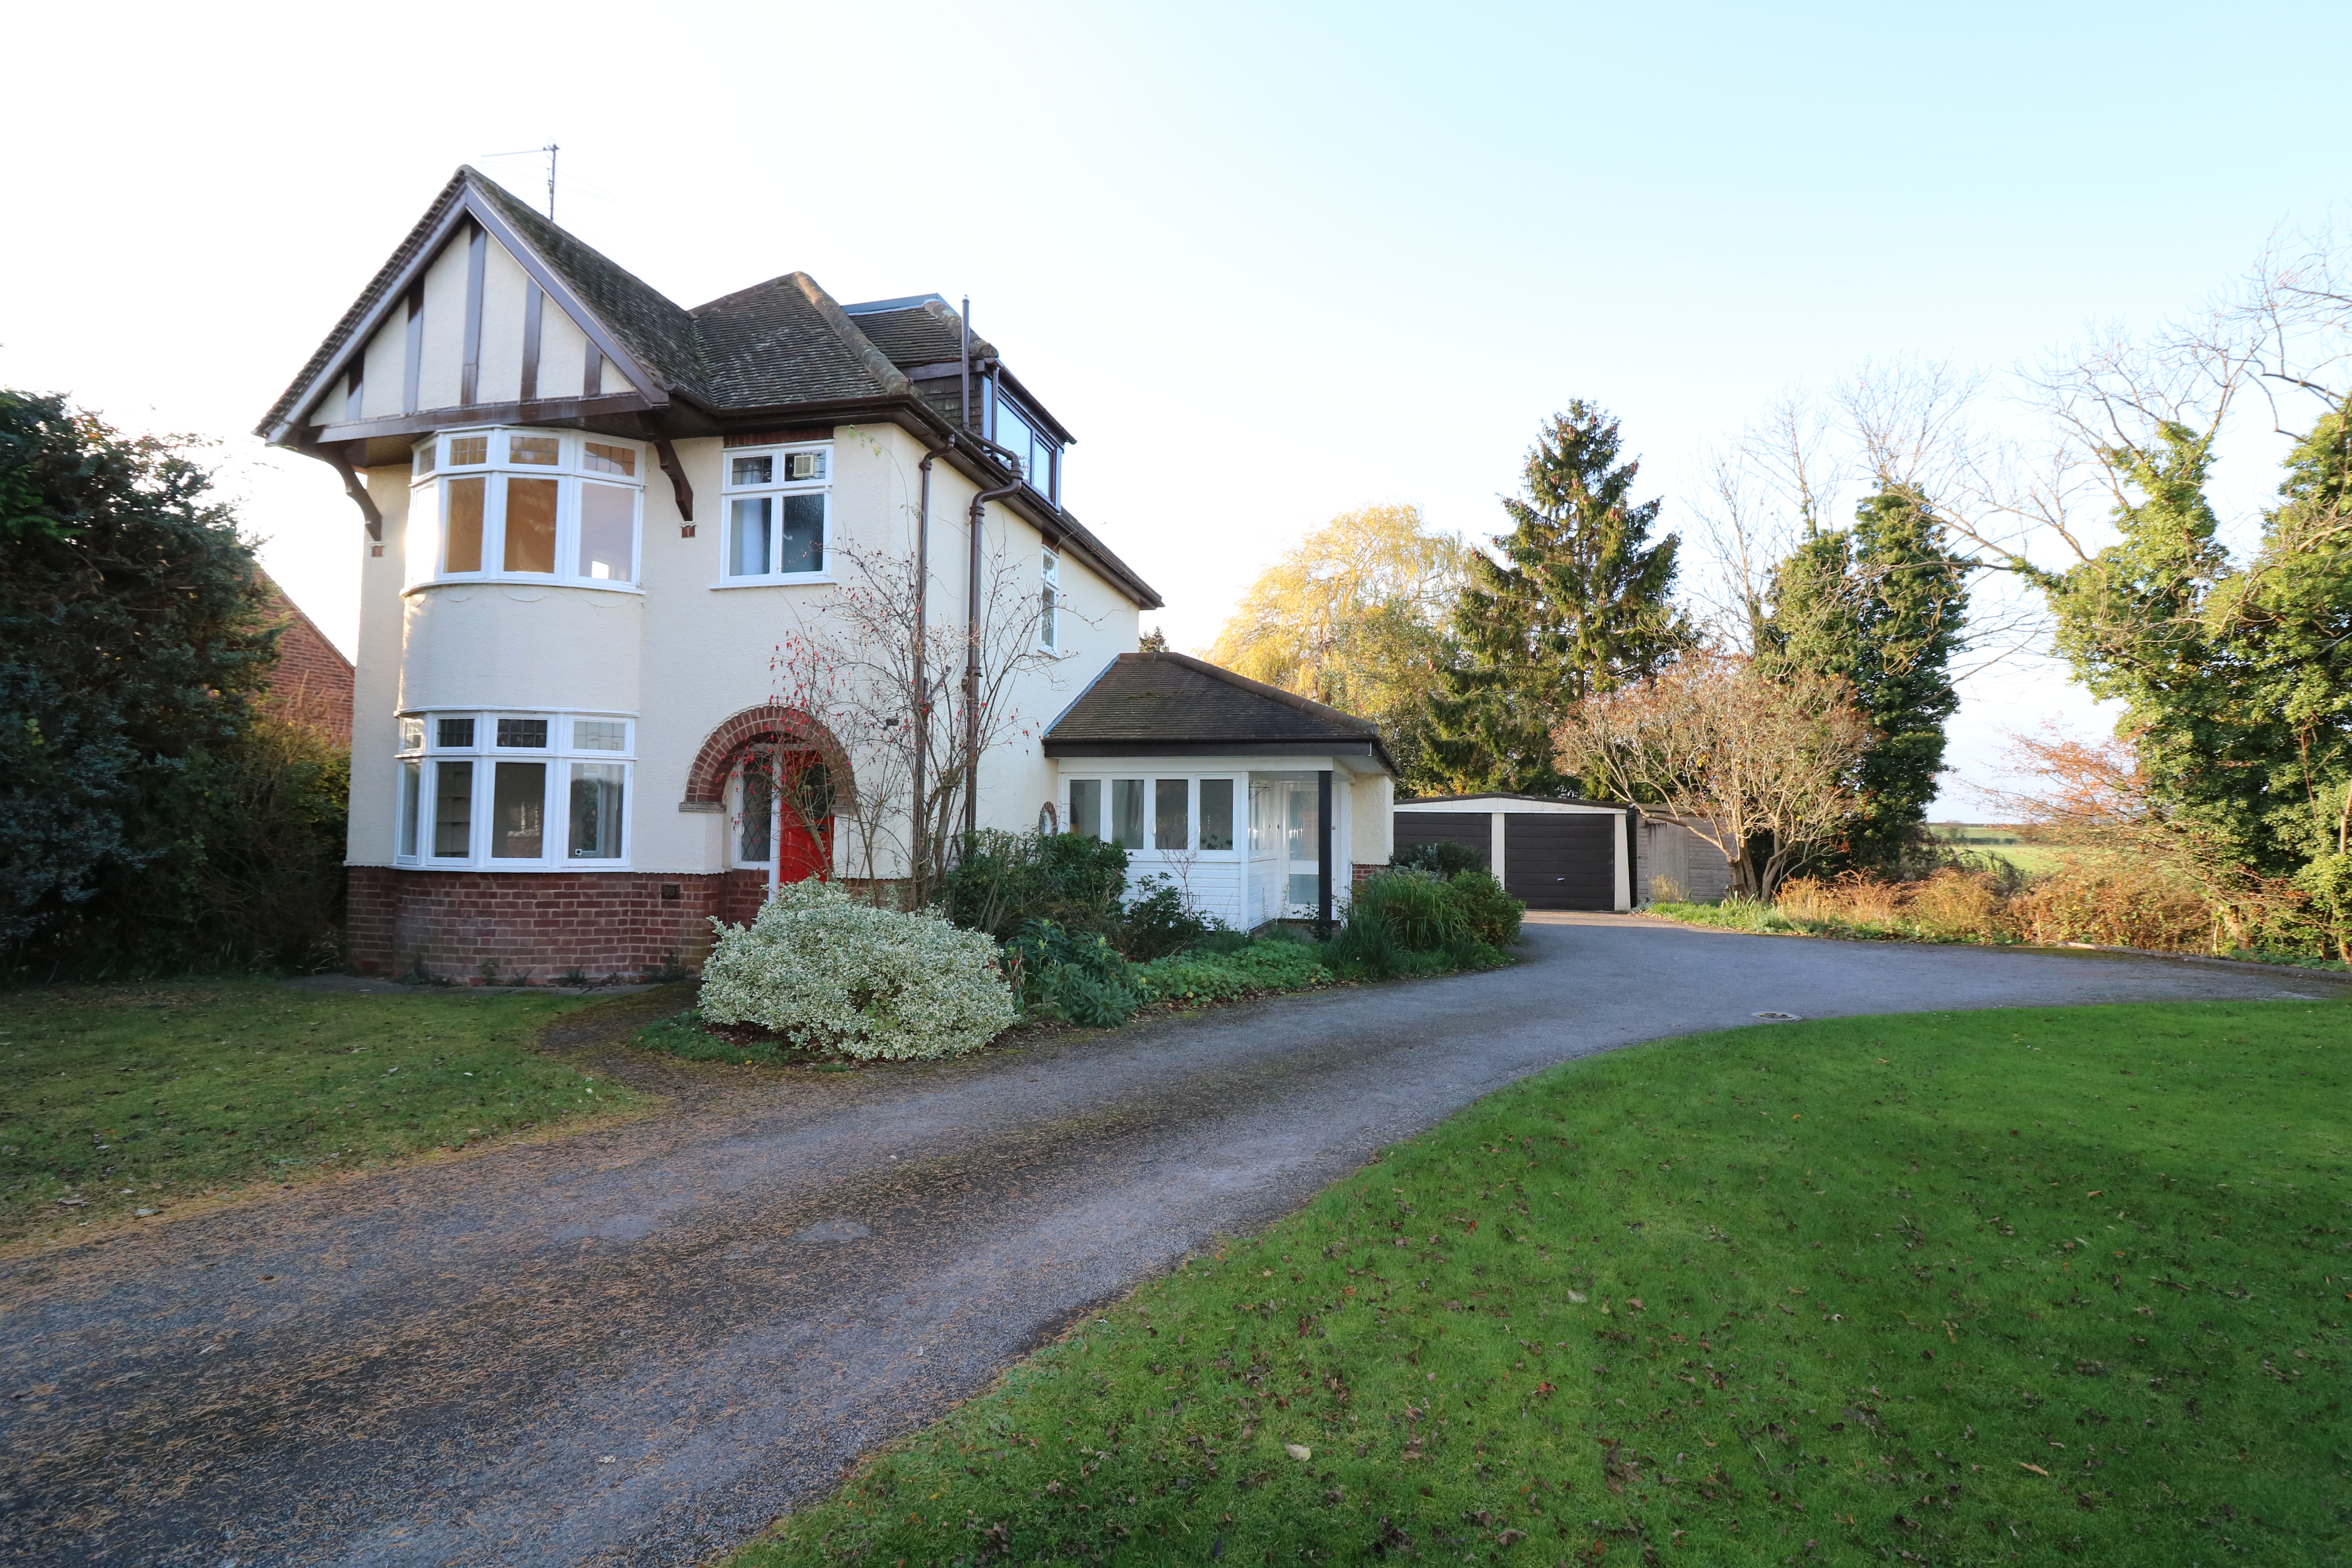 69 Victoria Road, Bidford on Avon, Alcester - Click for more details